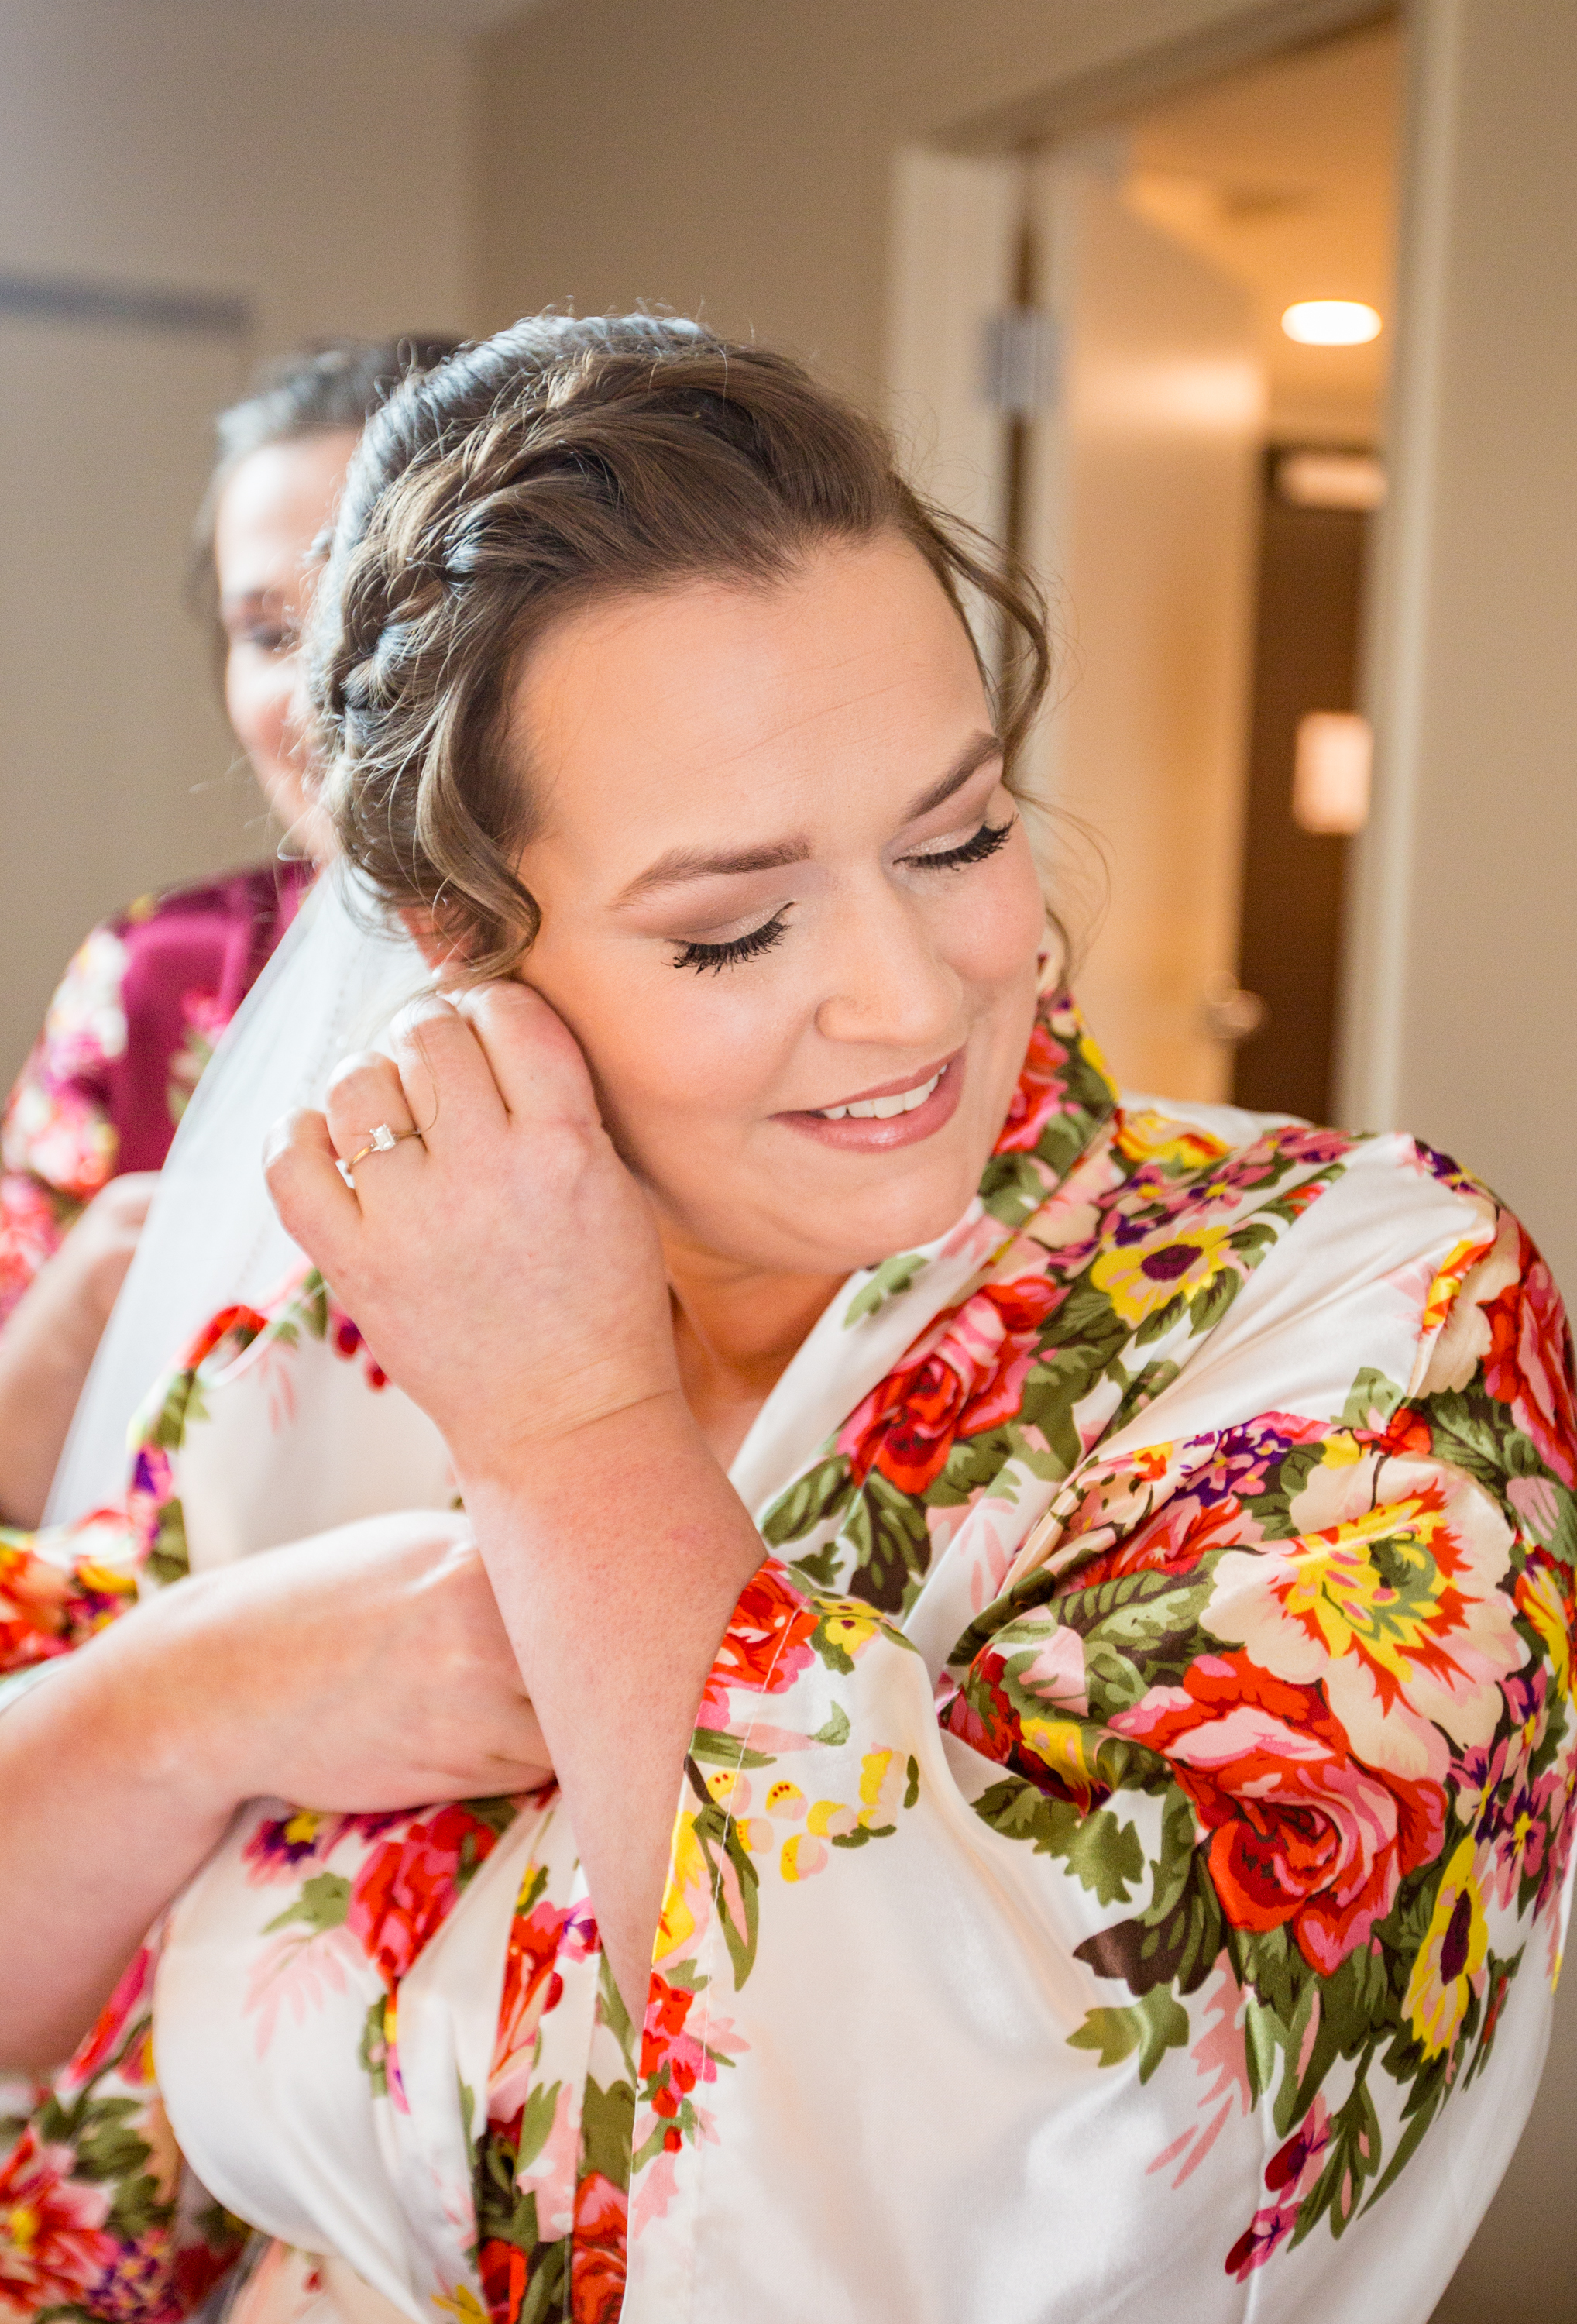 The bride puts her earrings in after getting her makeup done prior to her wedding.